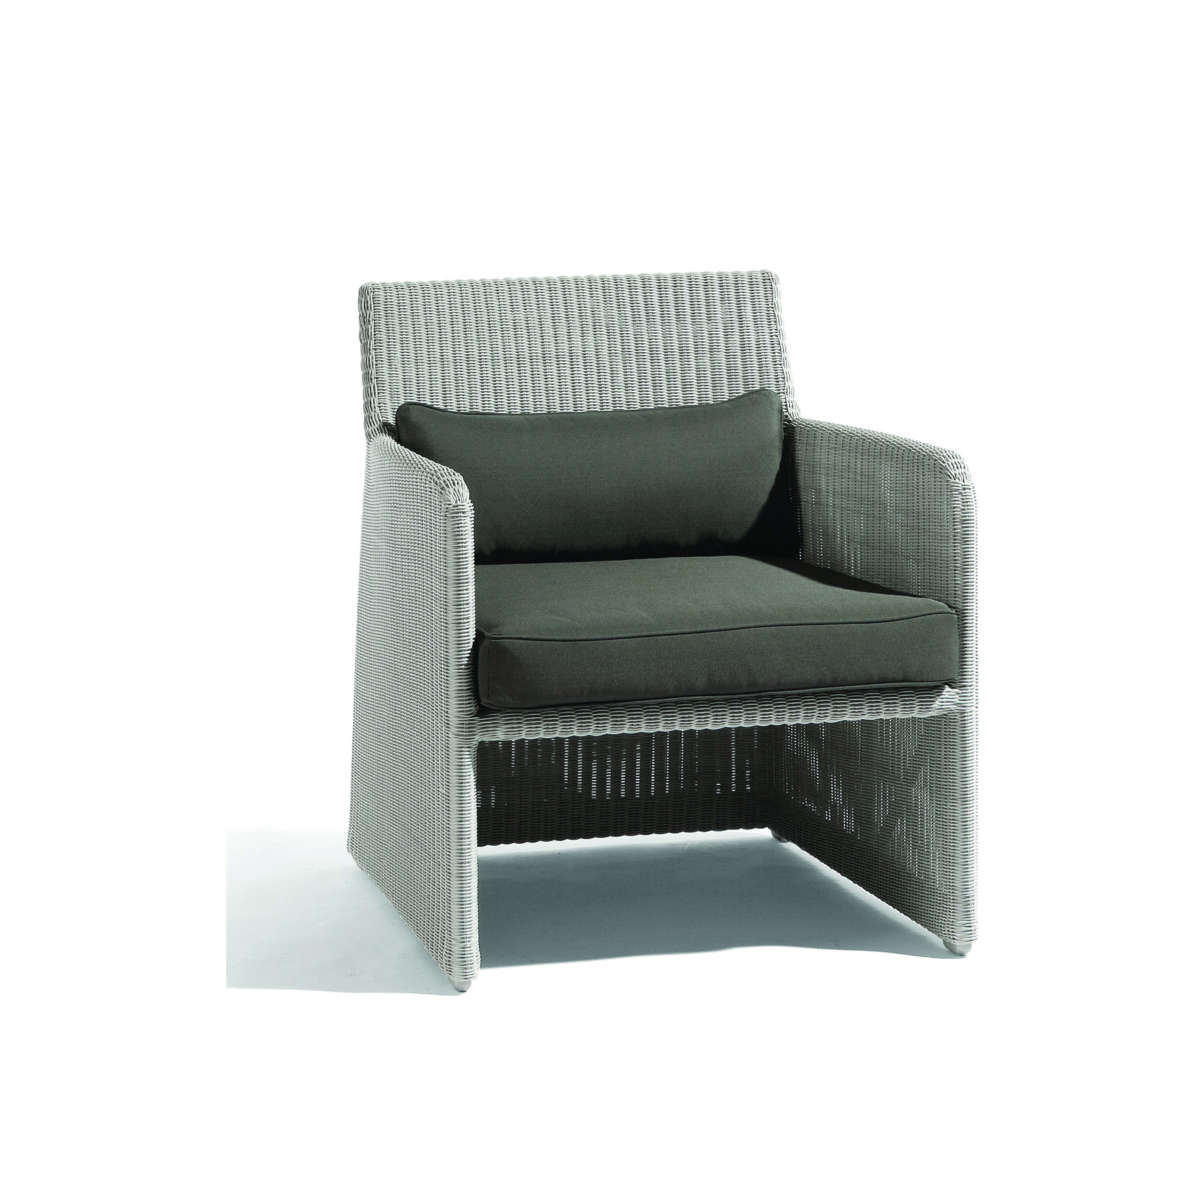 modern lounge chairs uk broyhill lenora club chair outdoor furniture shades and accessories the